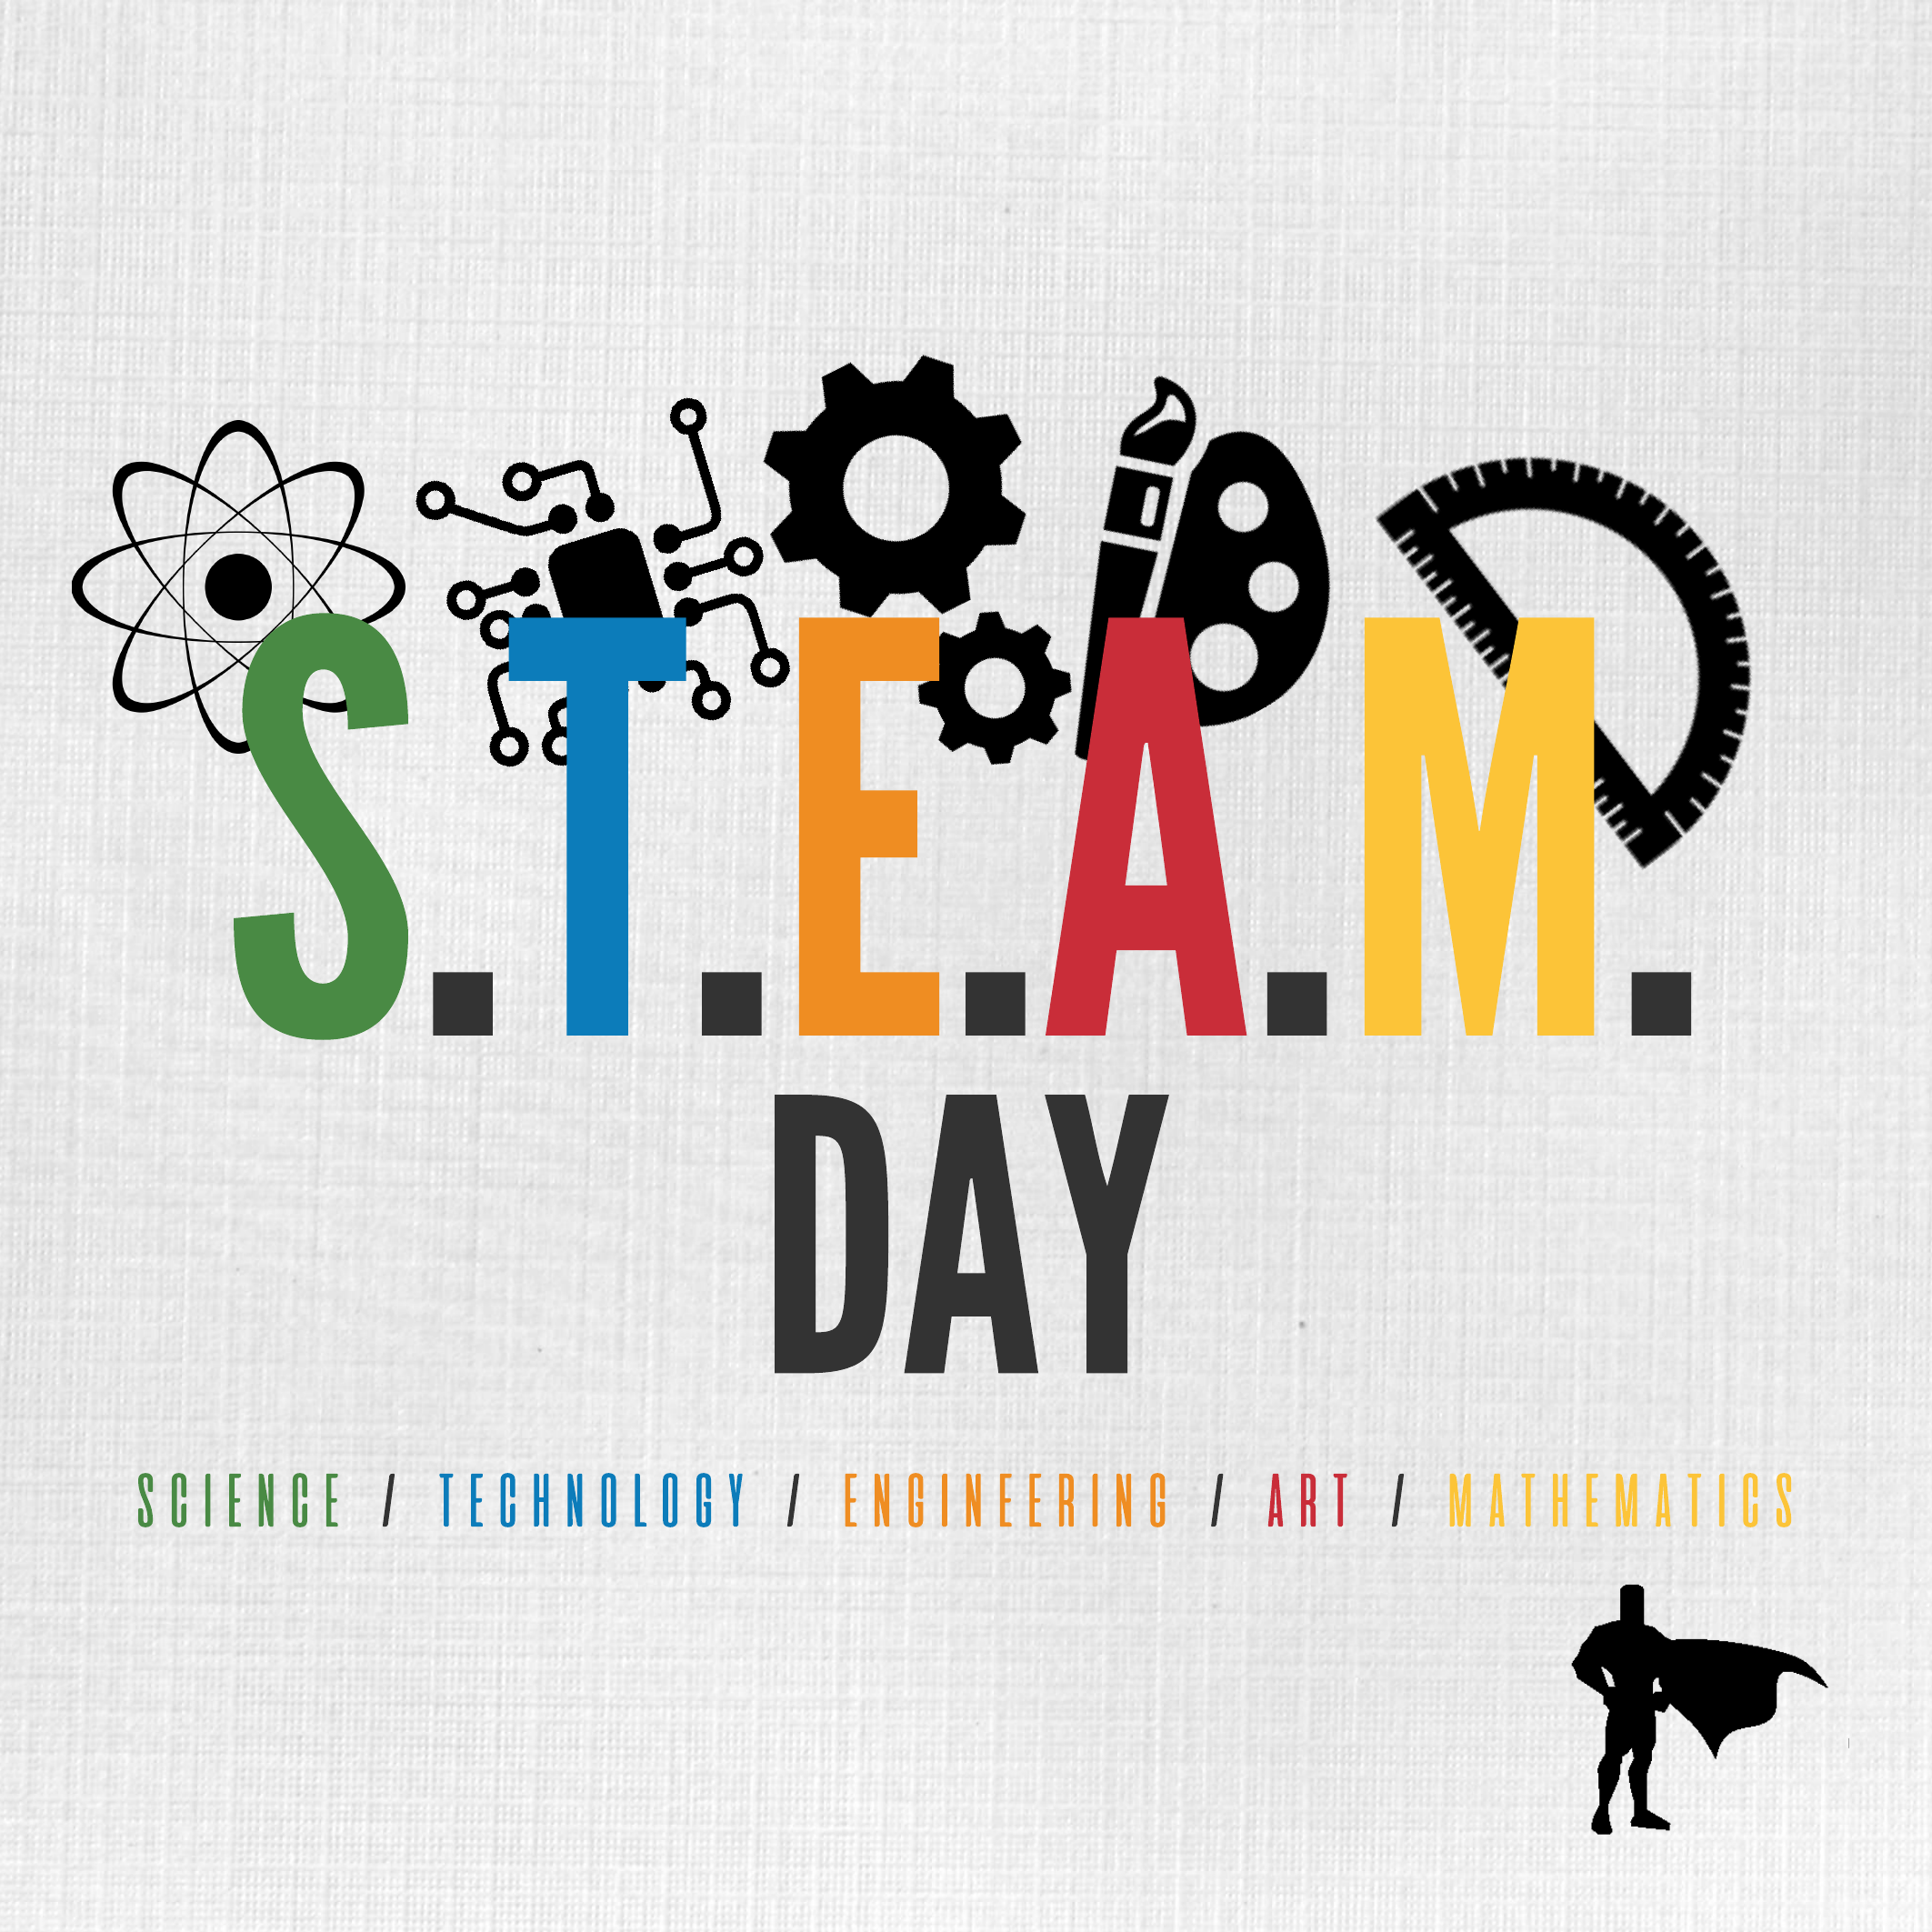 NOV 9 STEAM DAY.png